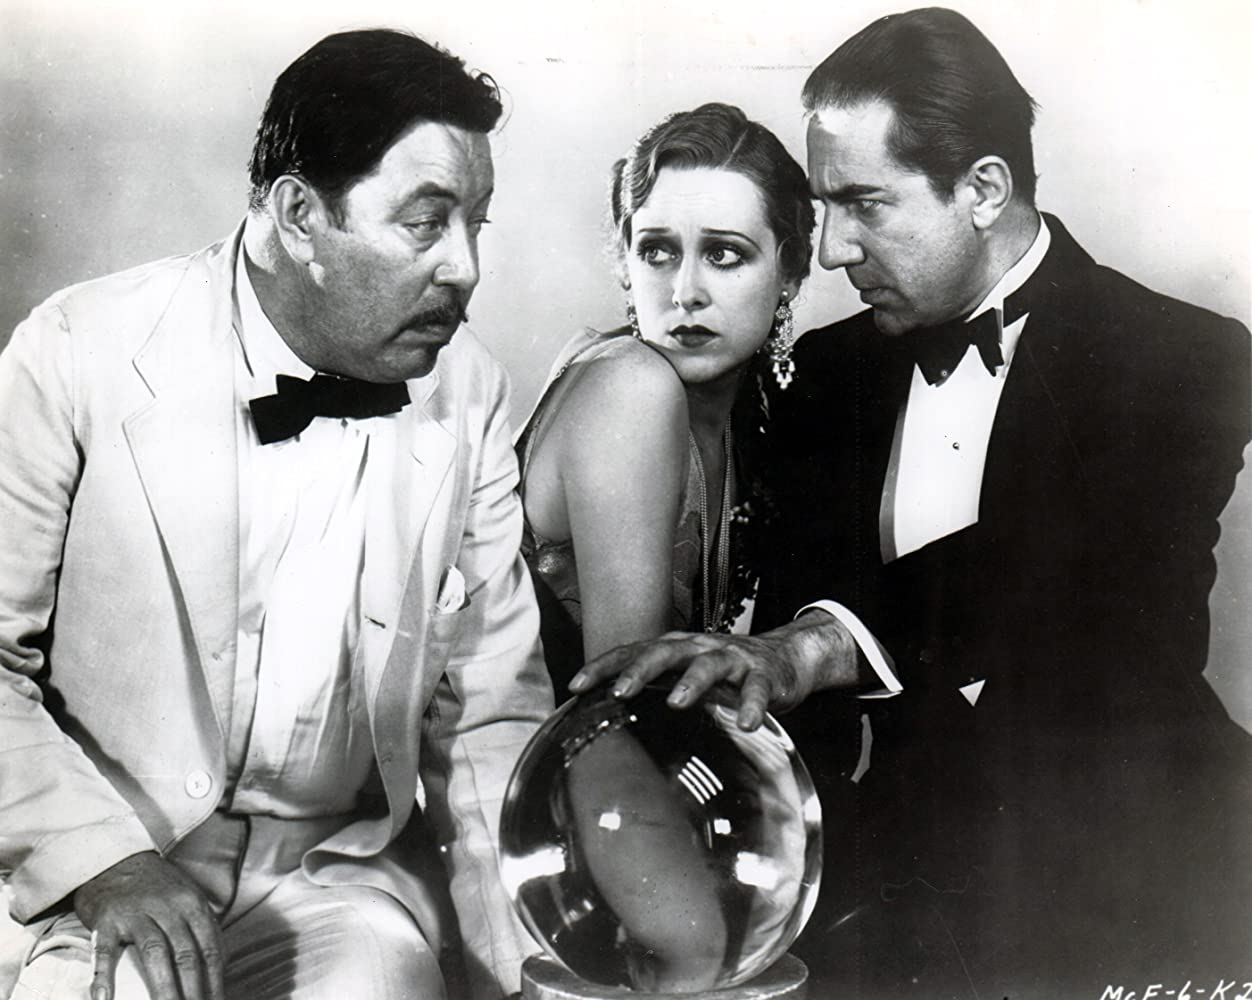 Bela Lugosi, Sally Eilers, and Warner Oland in The Black Camel (1931)